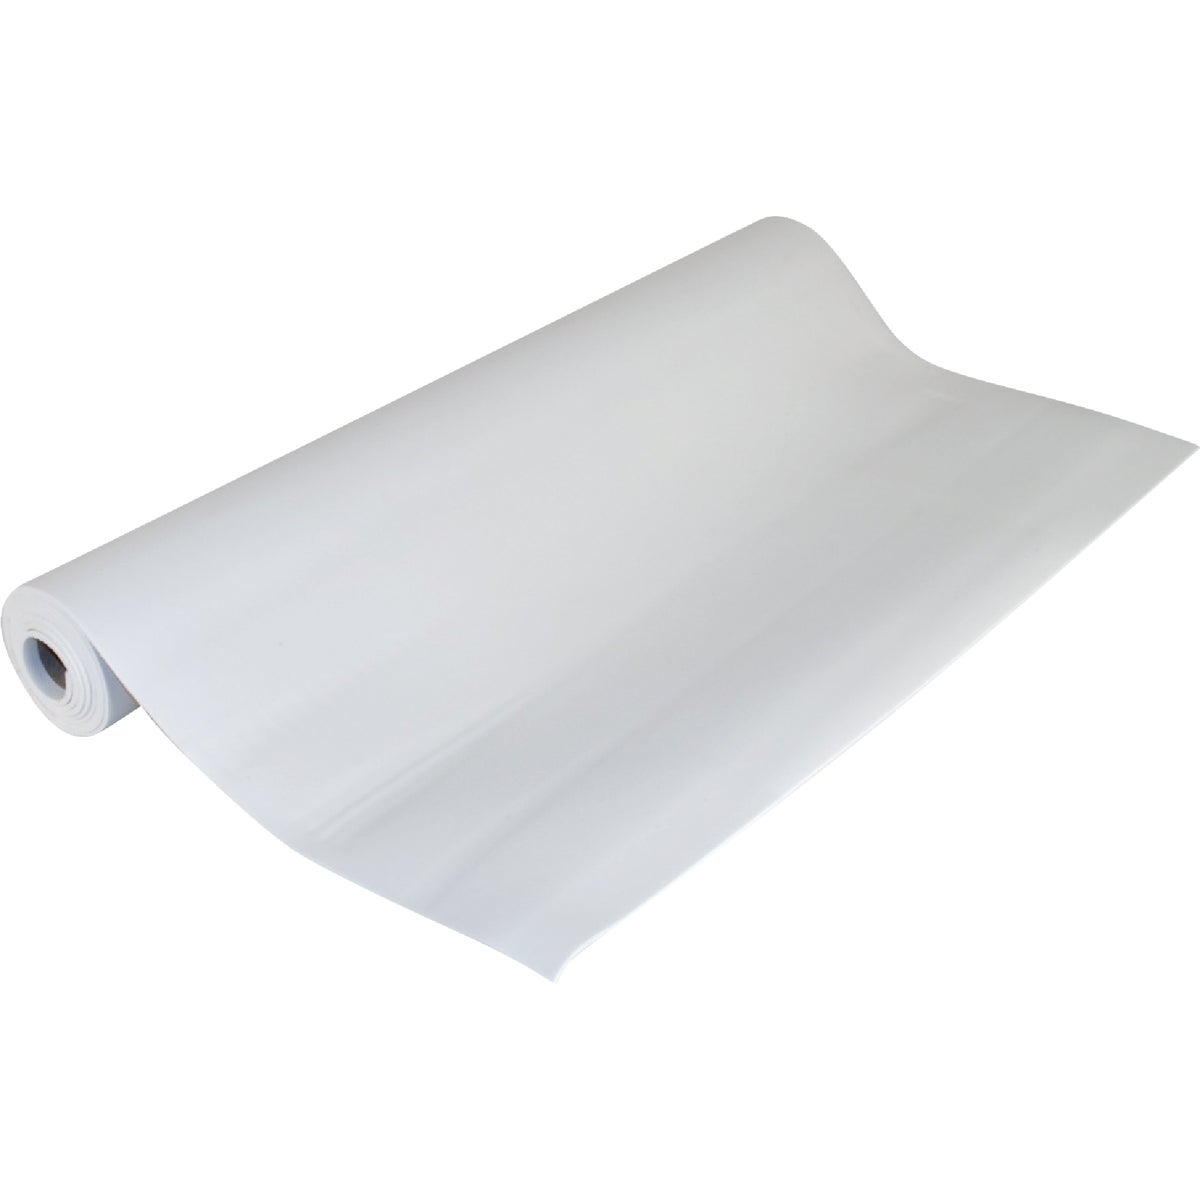 "18""X4' WHITE GRIP LINER - 04F-C6U52-01 by Kittrich Corp"